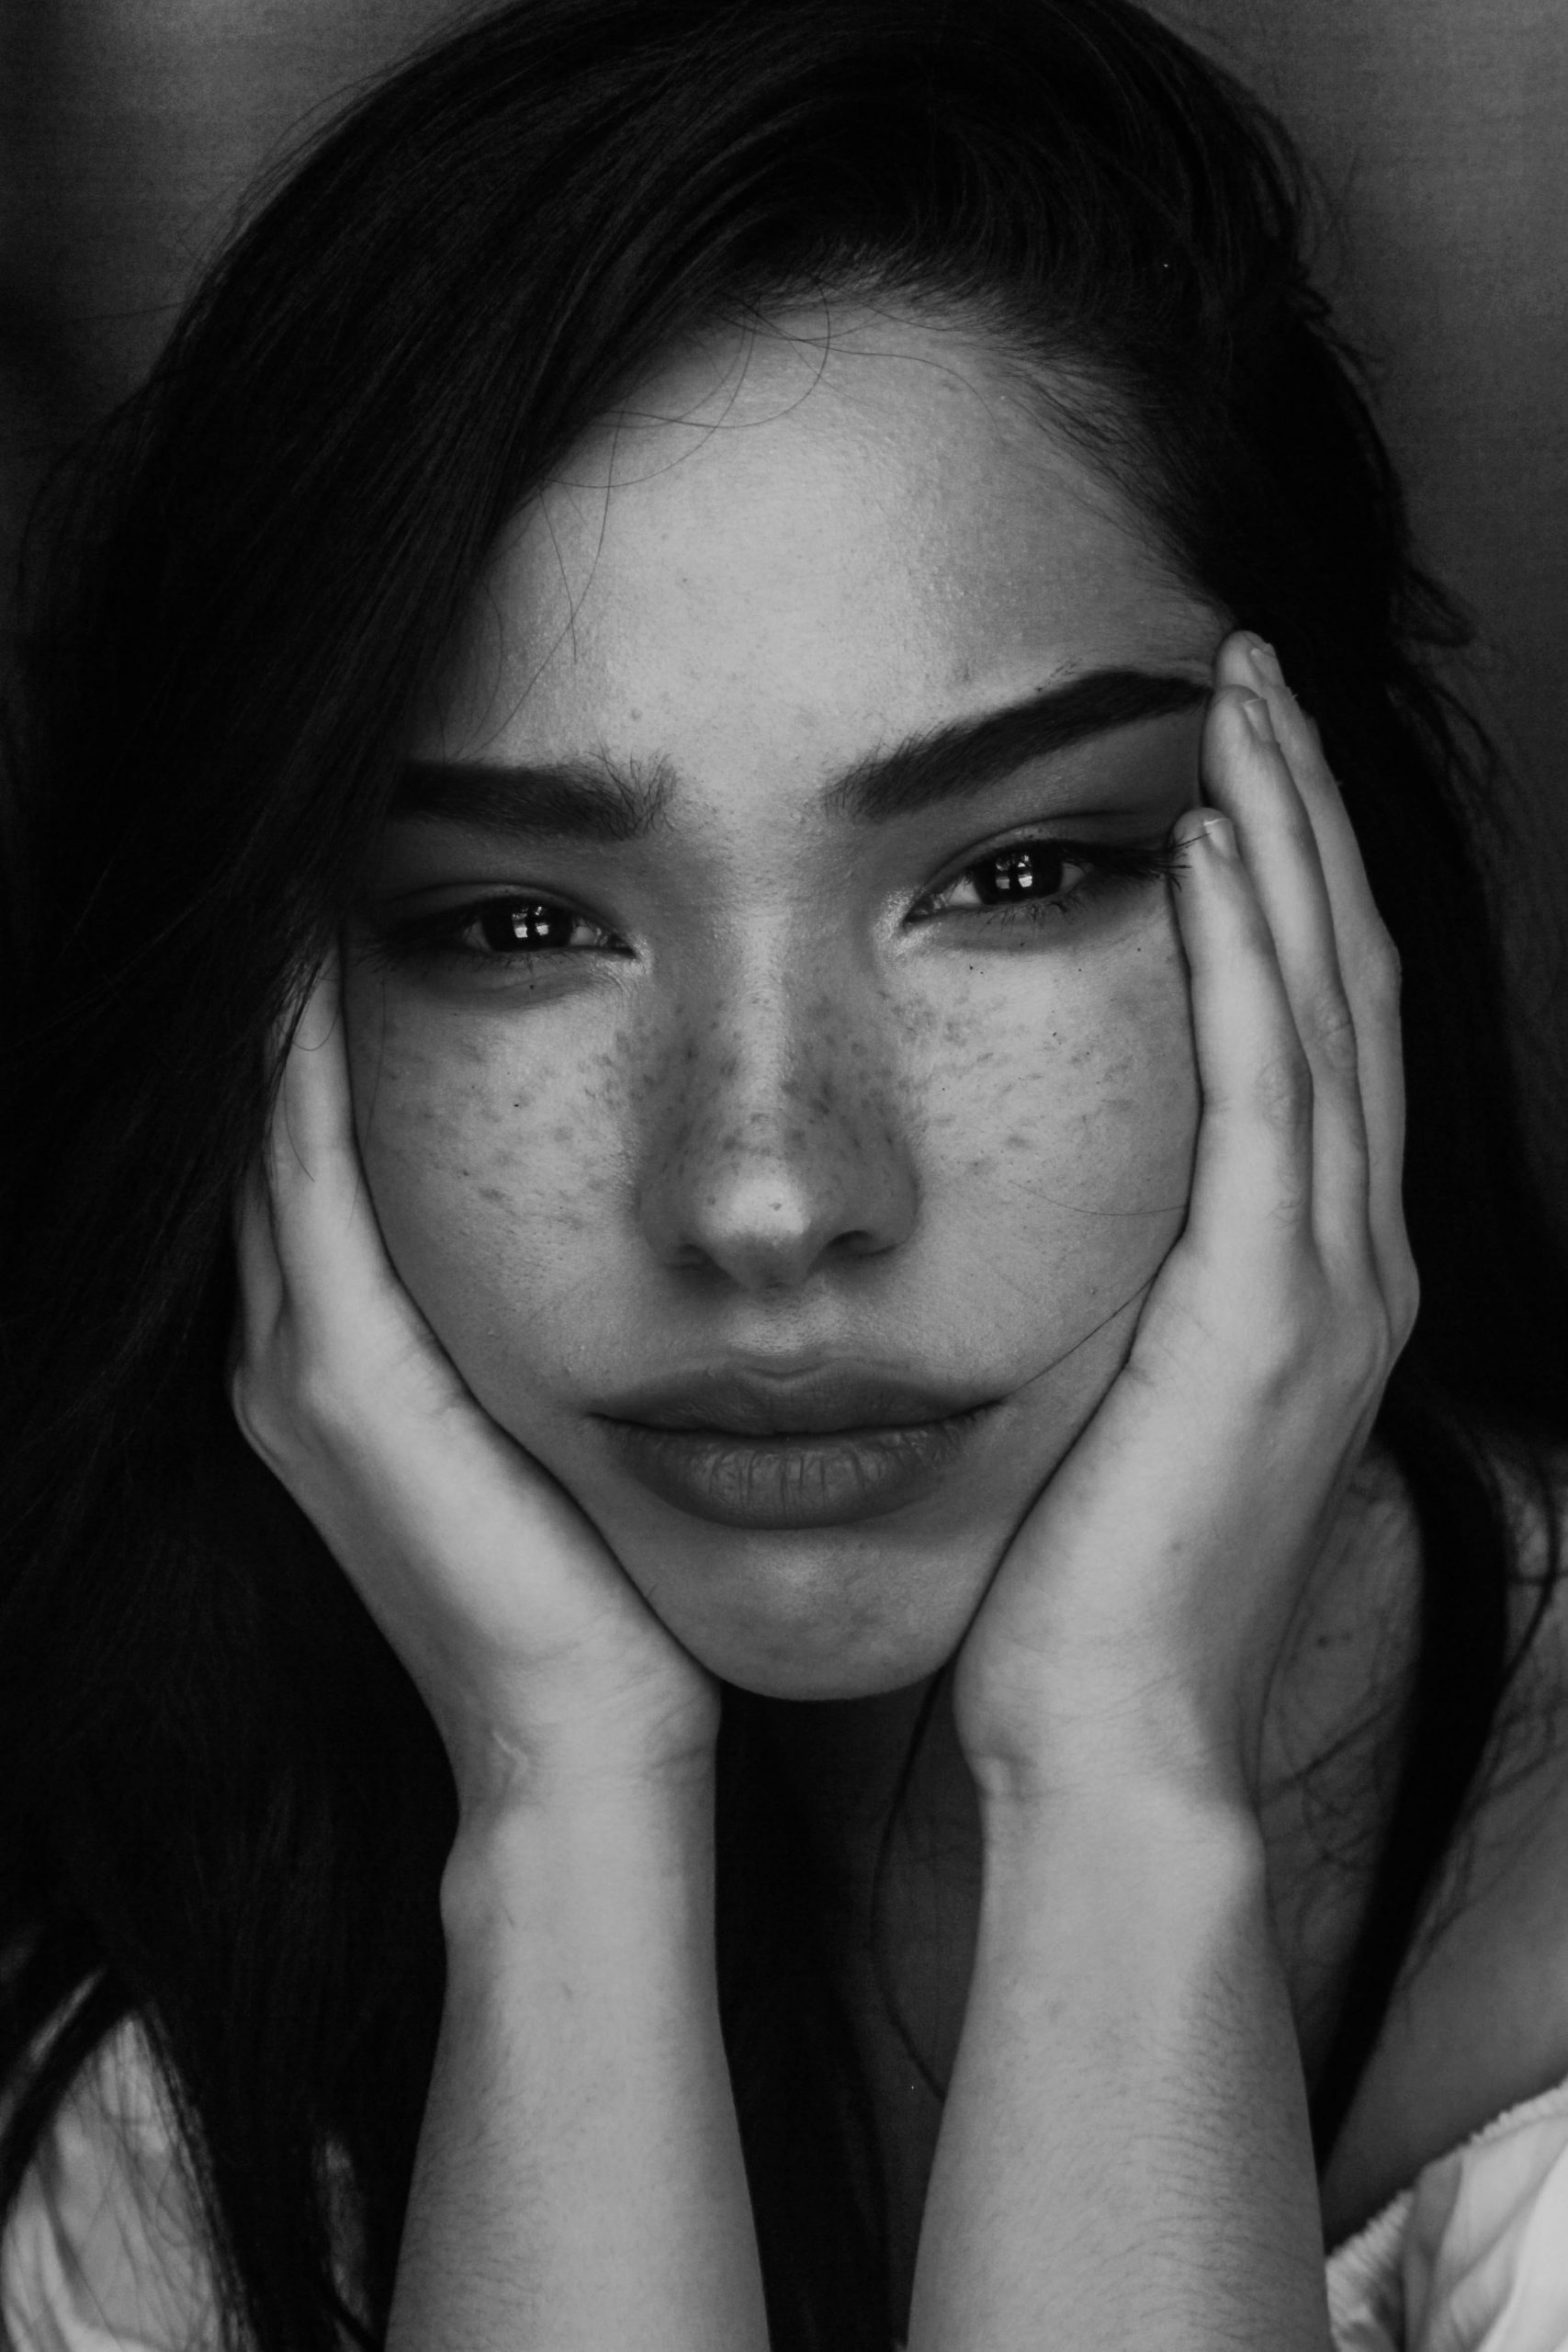 Black and white portrait of woman, emotional healing is hard